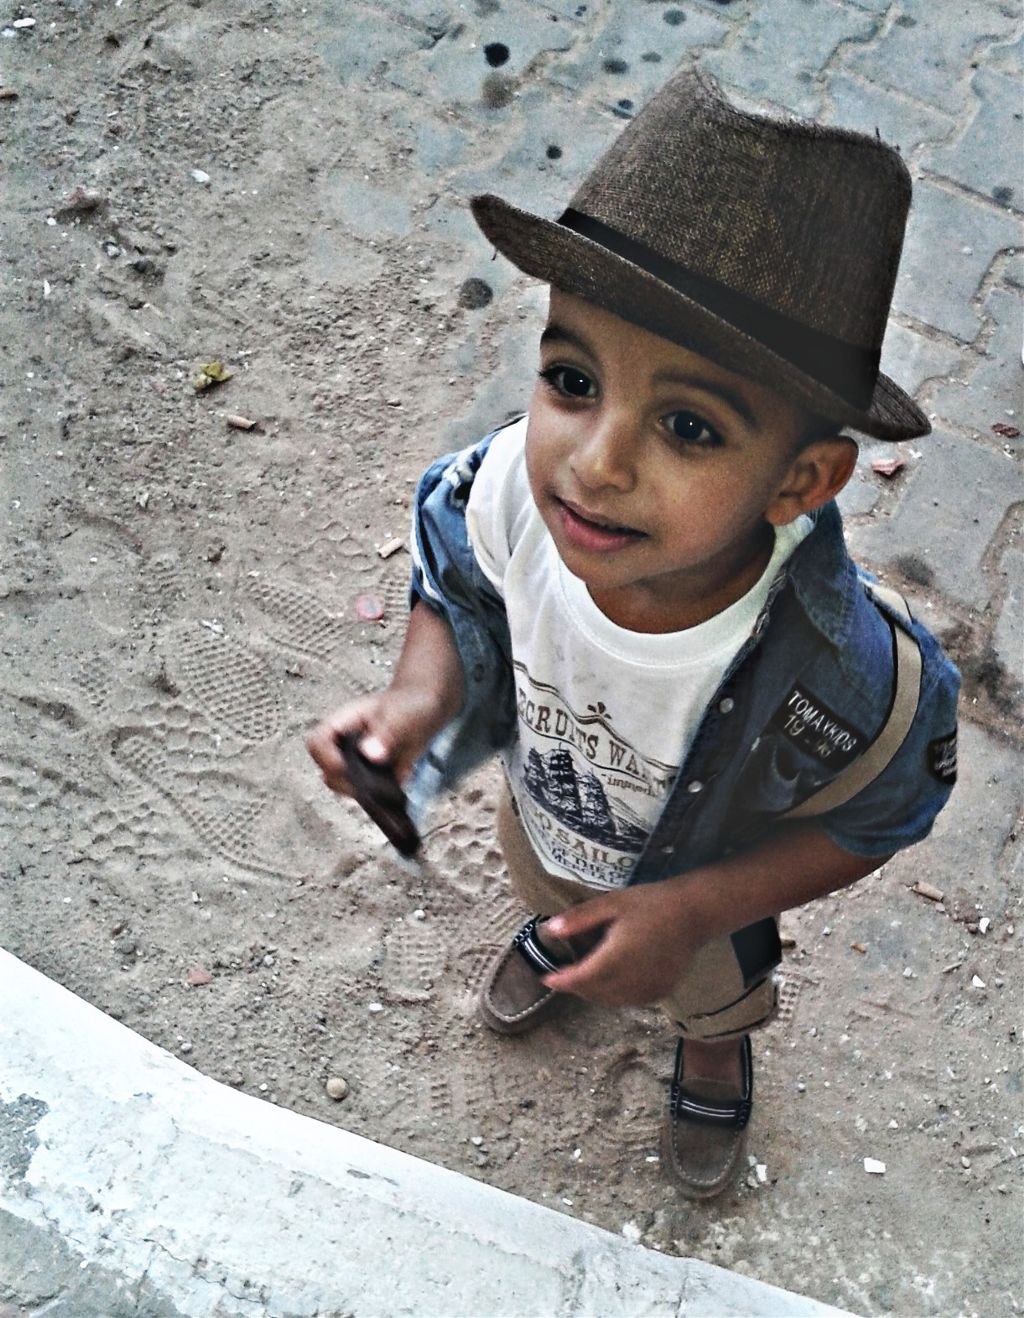 My brother :v